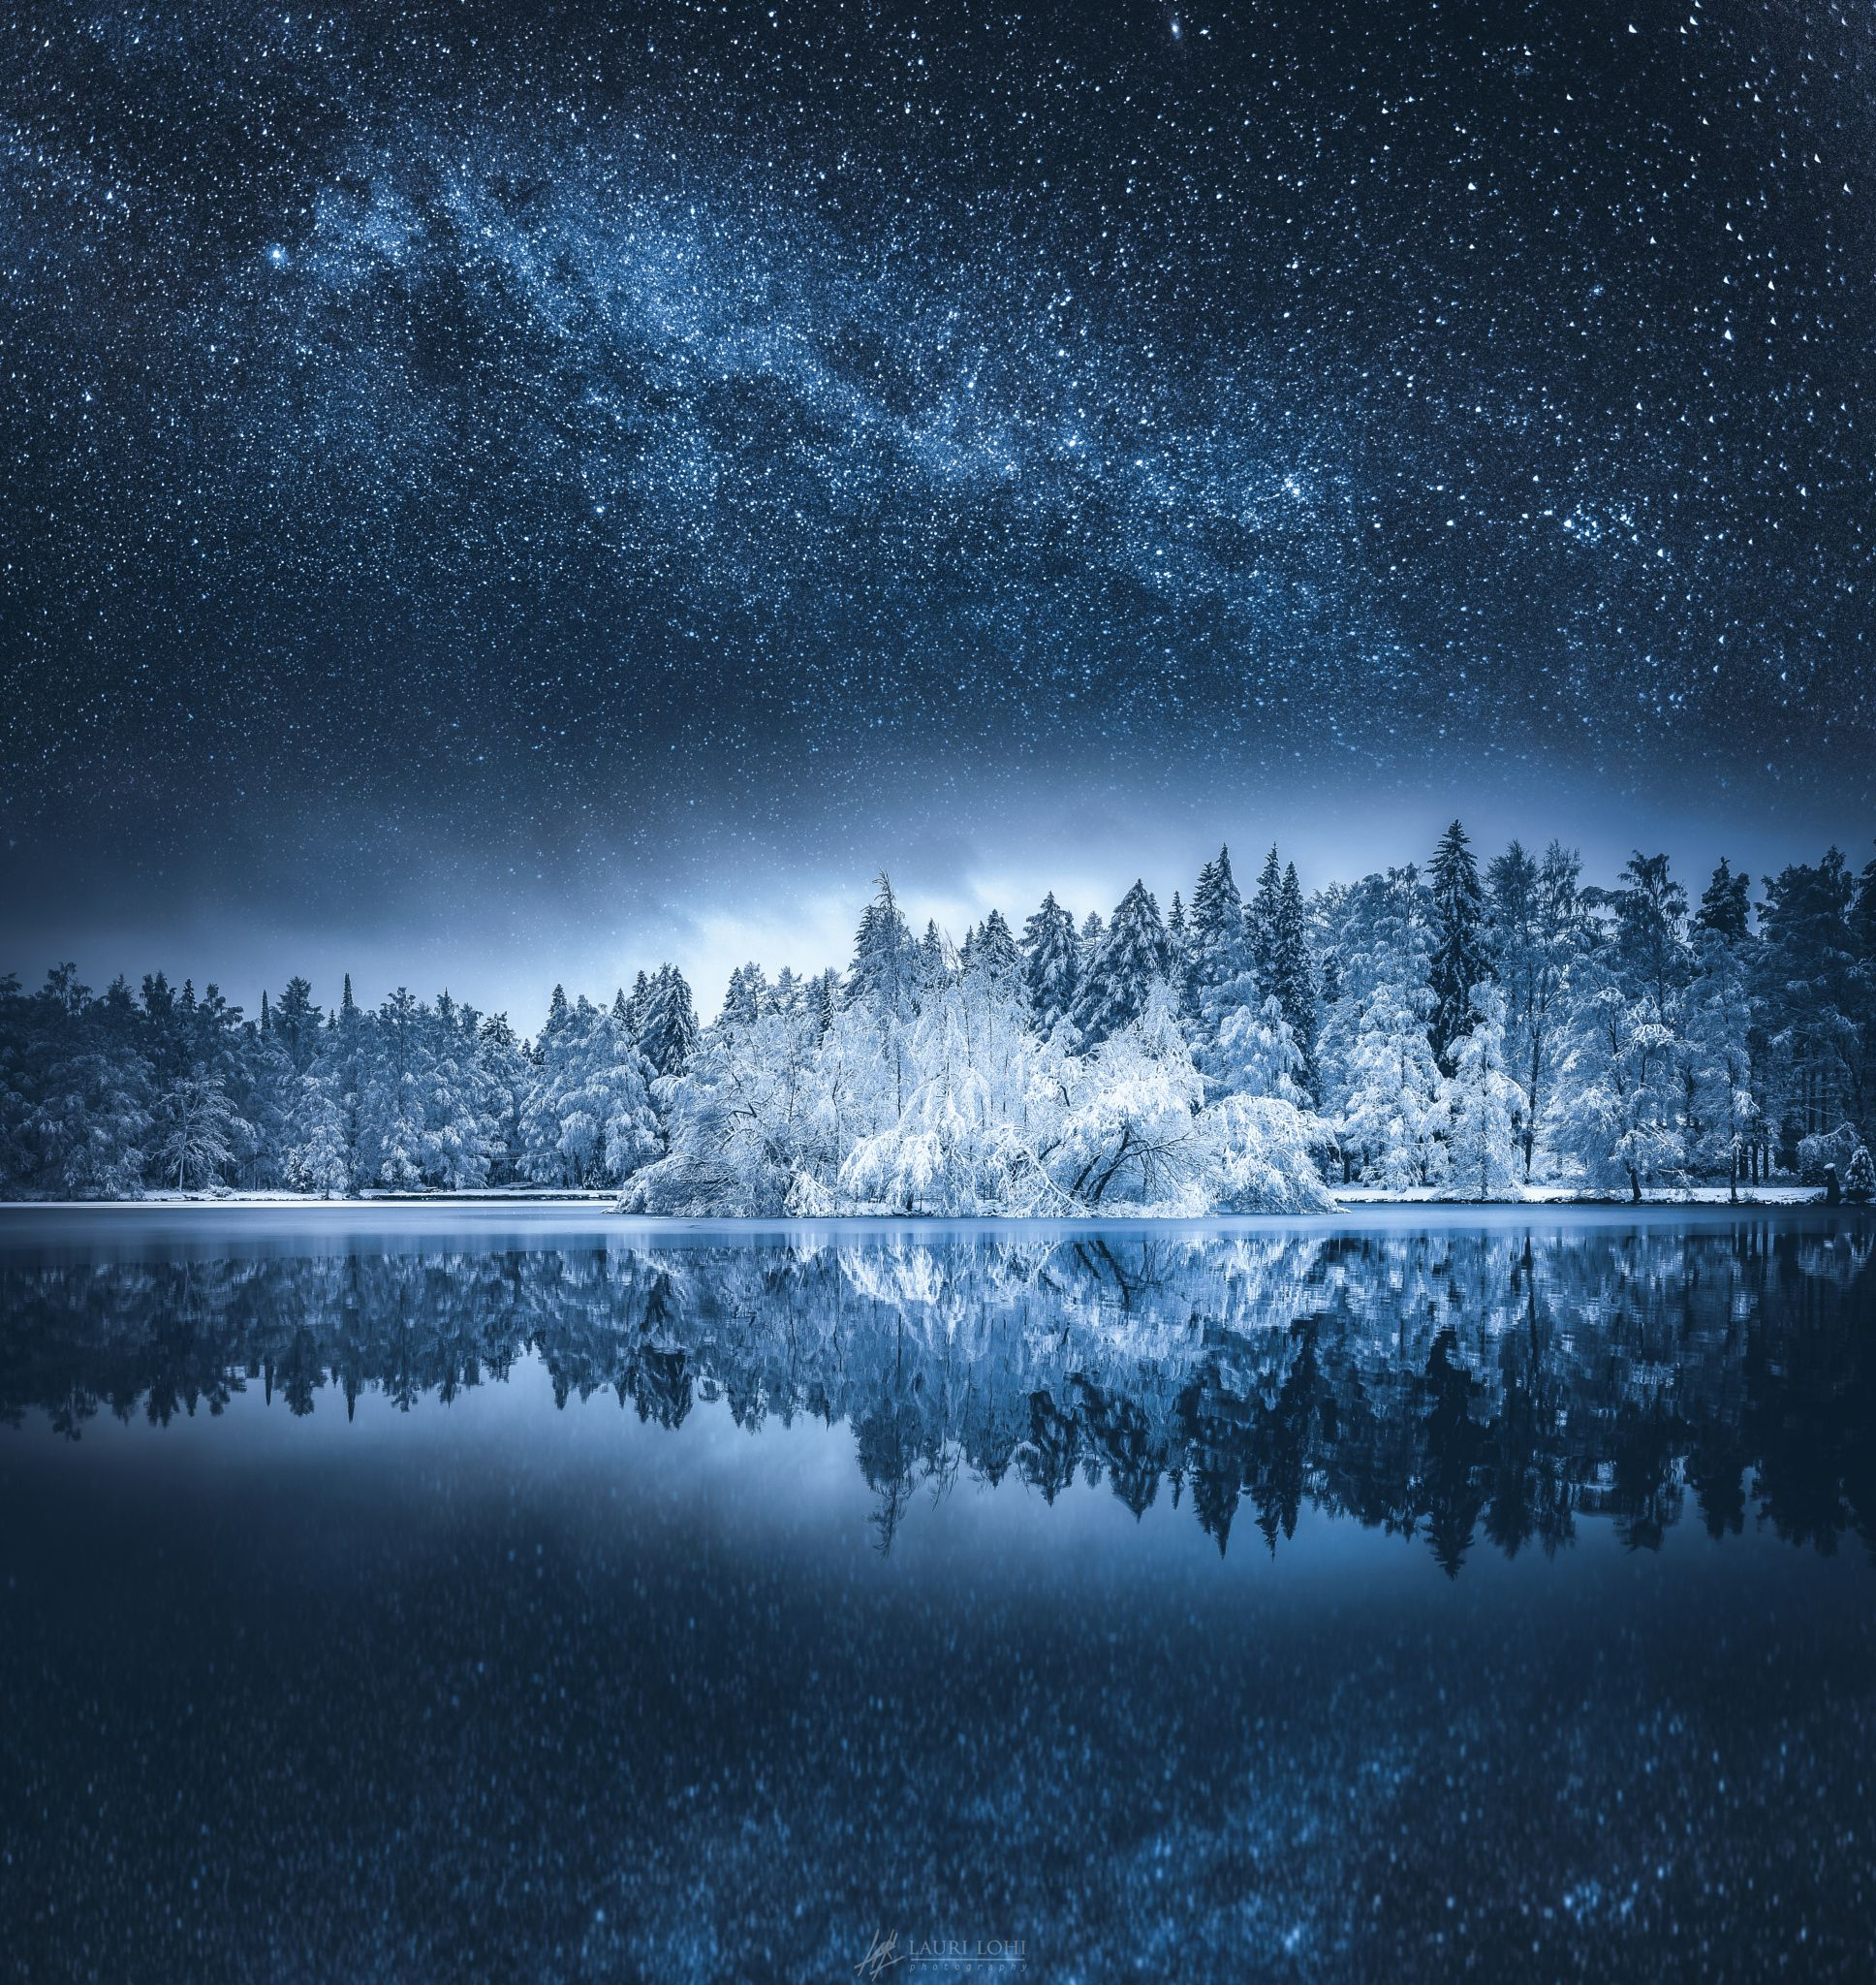 Happy Birthday Finland By Lauri Lohi